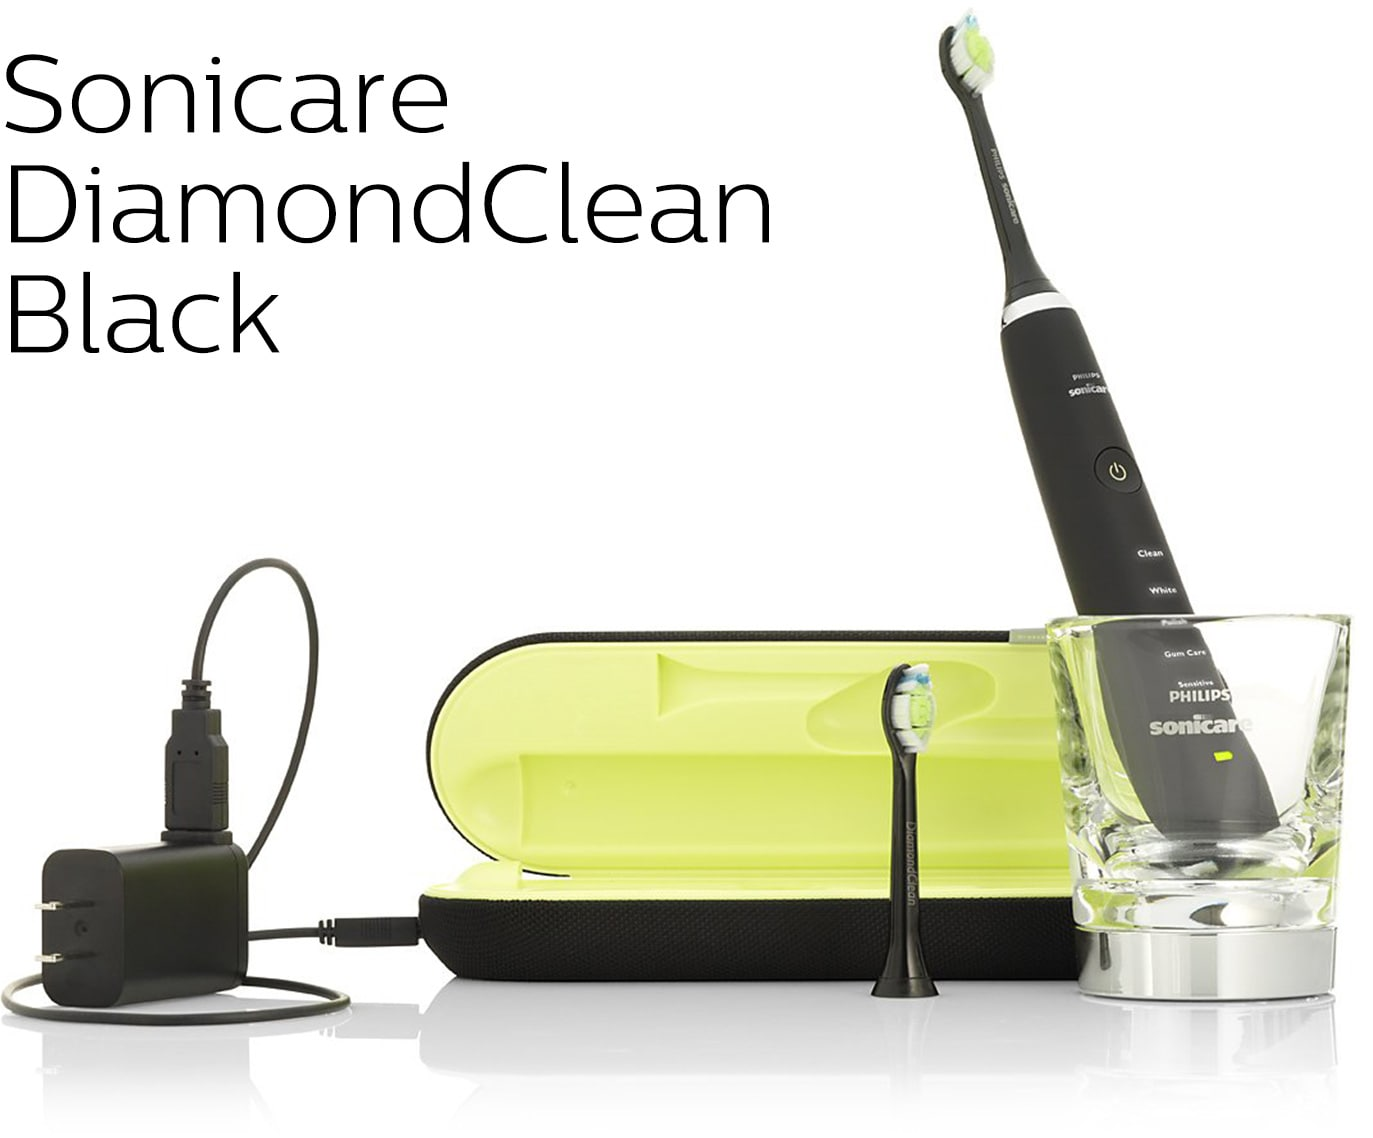 DiamondClean Black